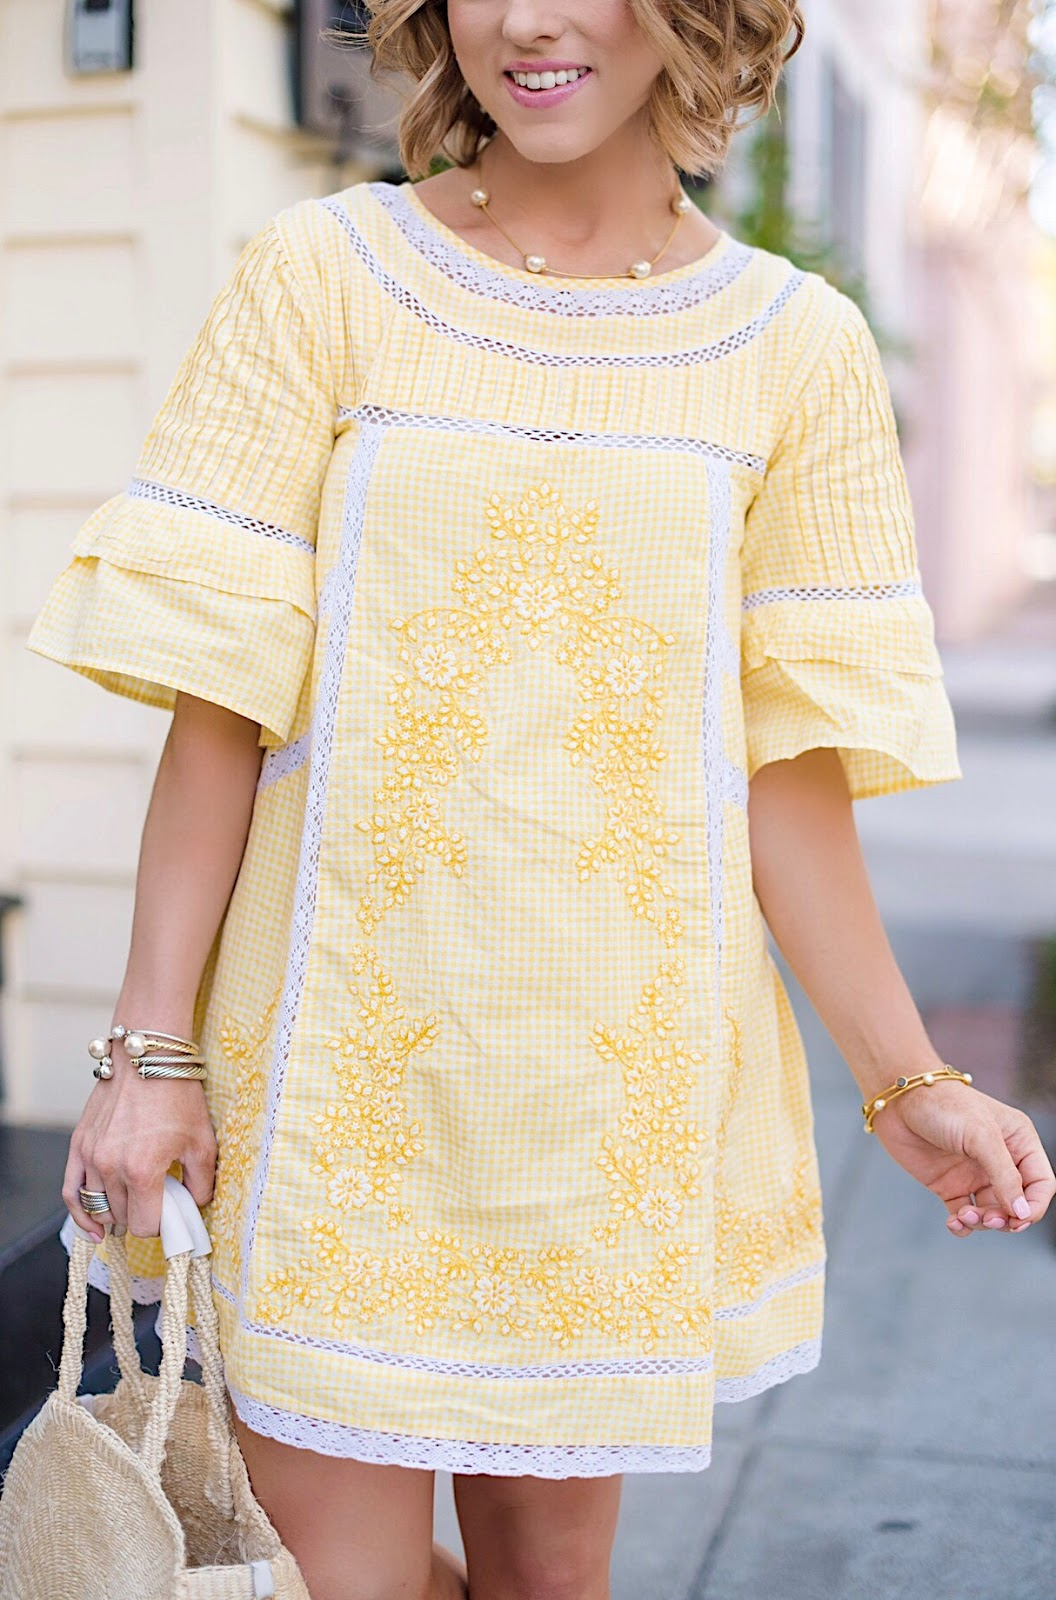 Free People Sunny Day Dress + Clare V Alice Bag in Charleston - Something Delightful Blog